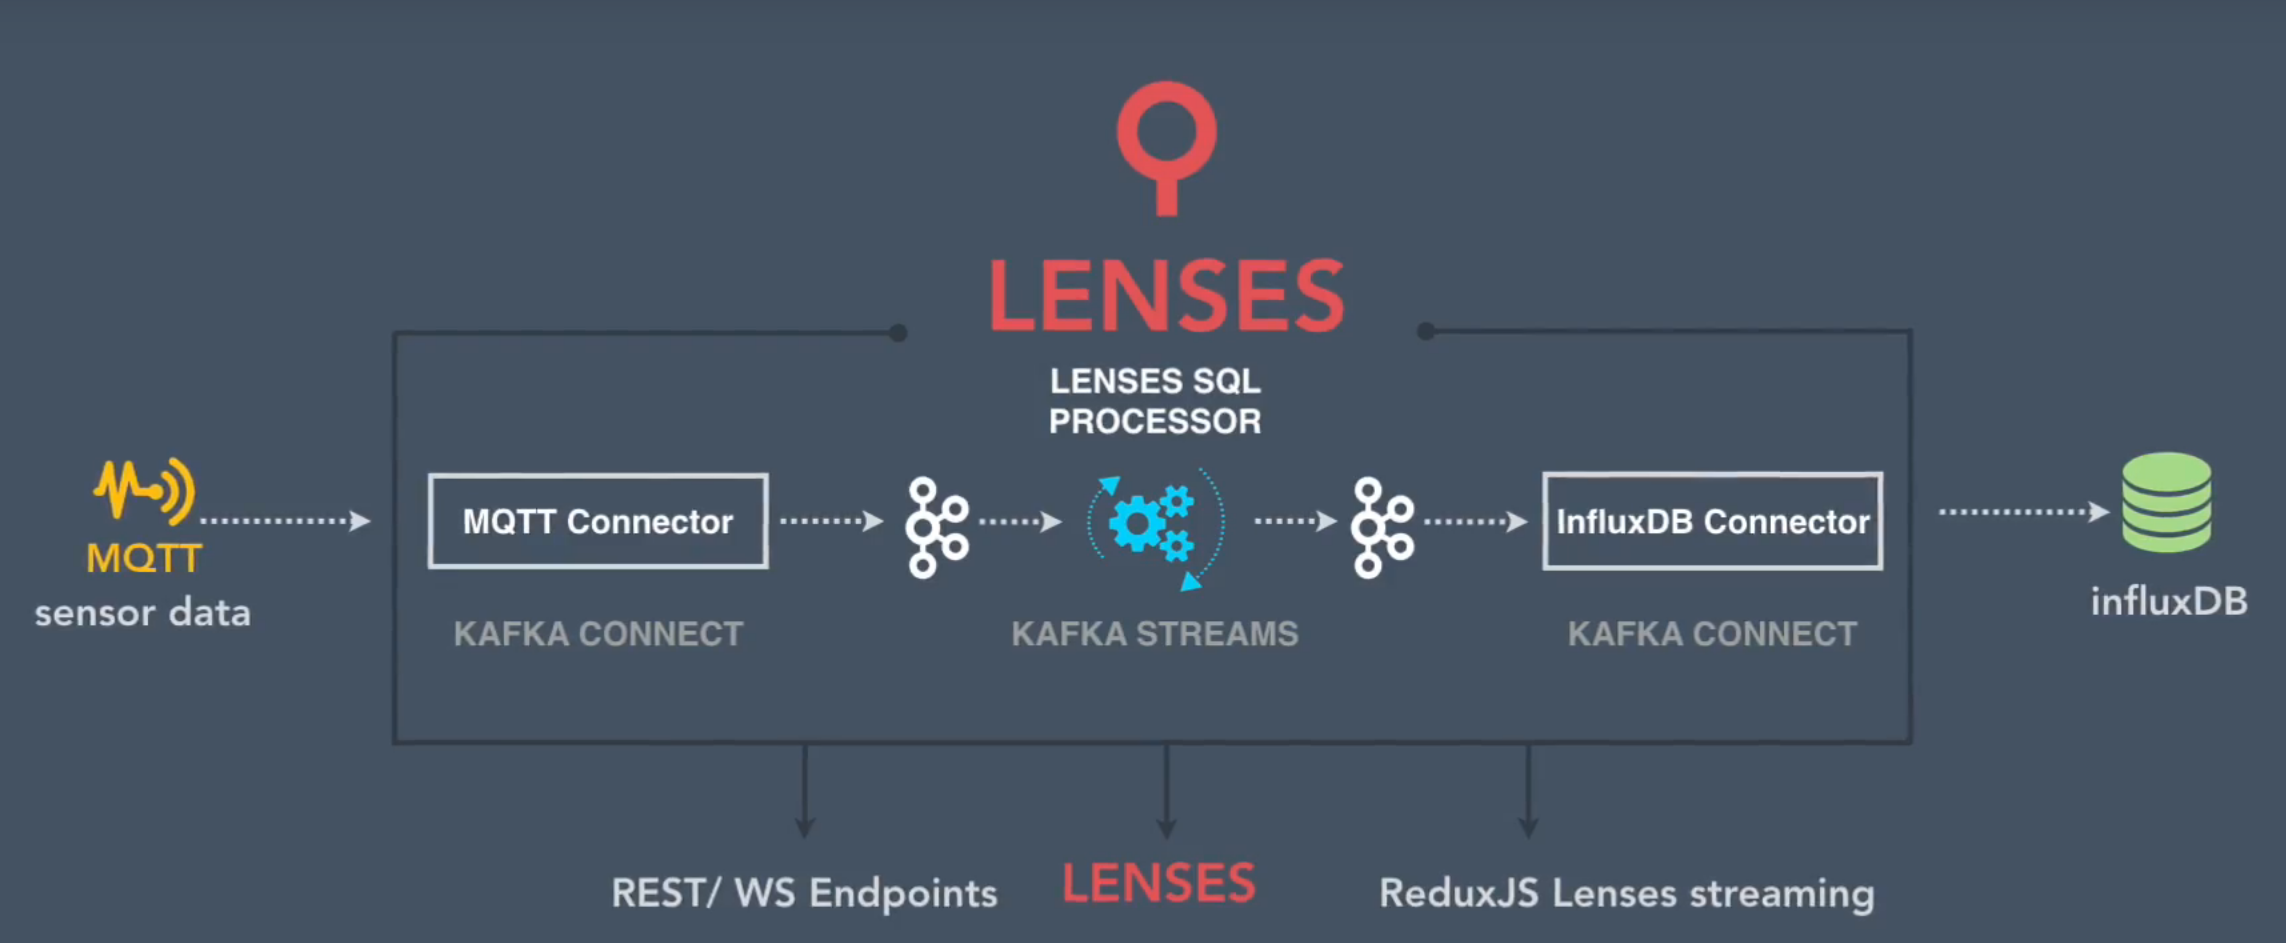 IoT with Kafka via Lenses